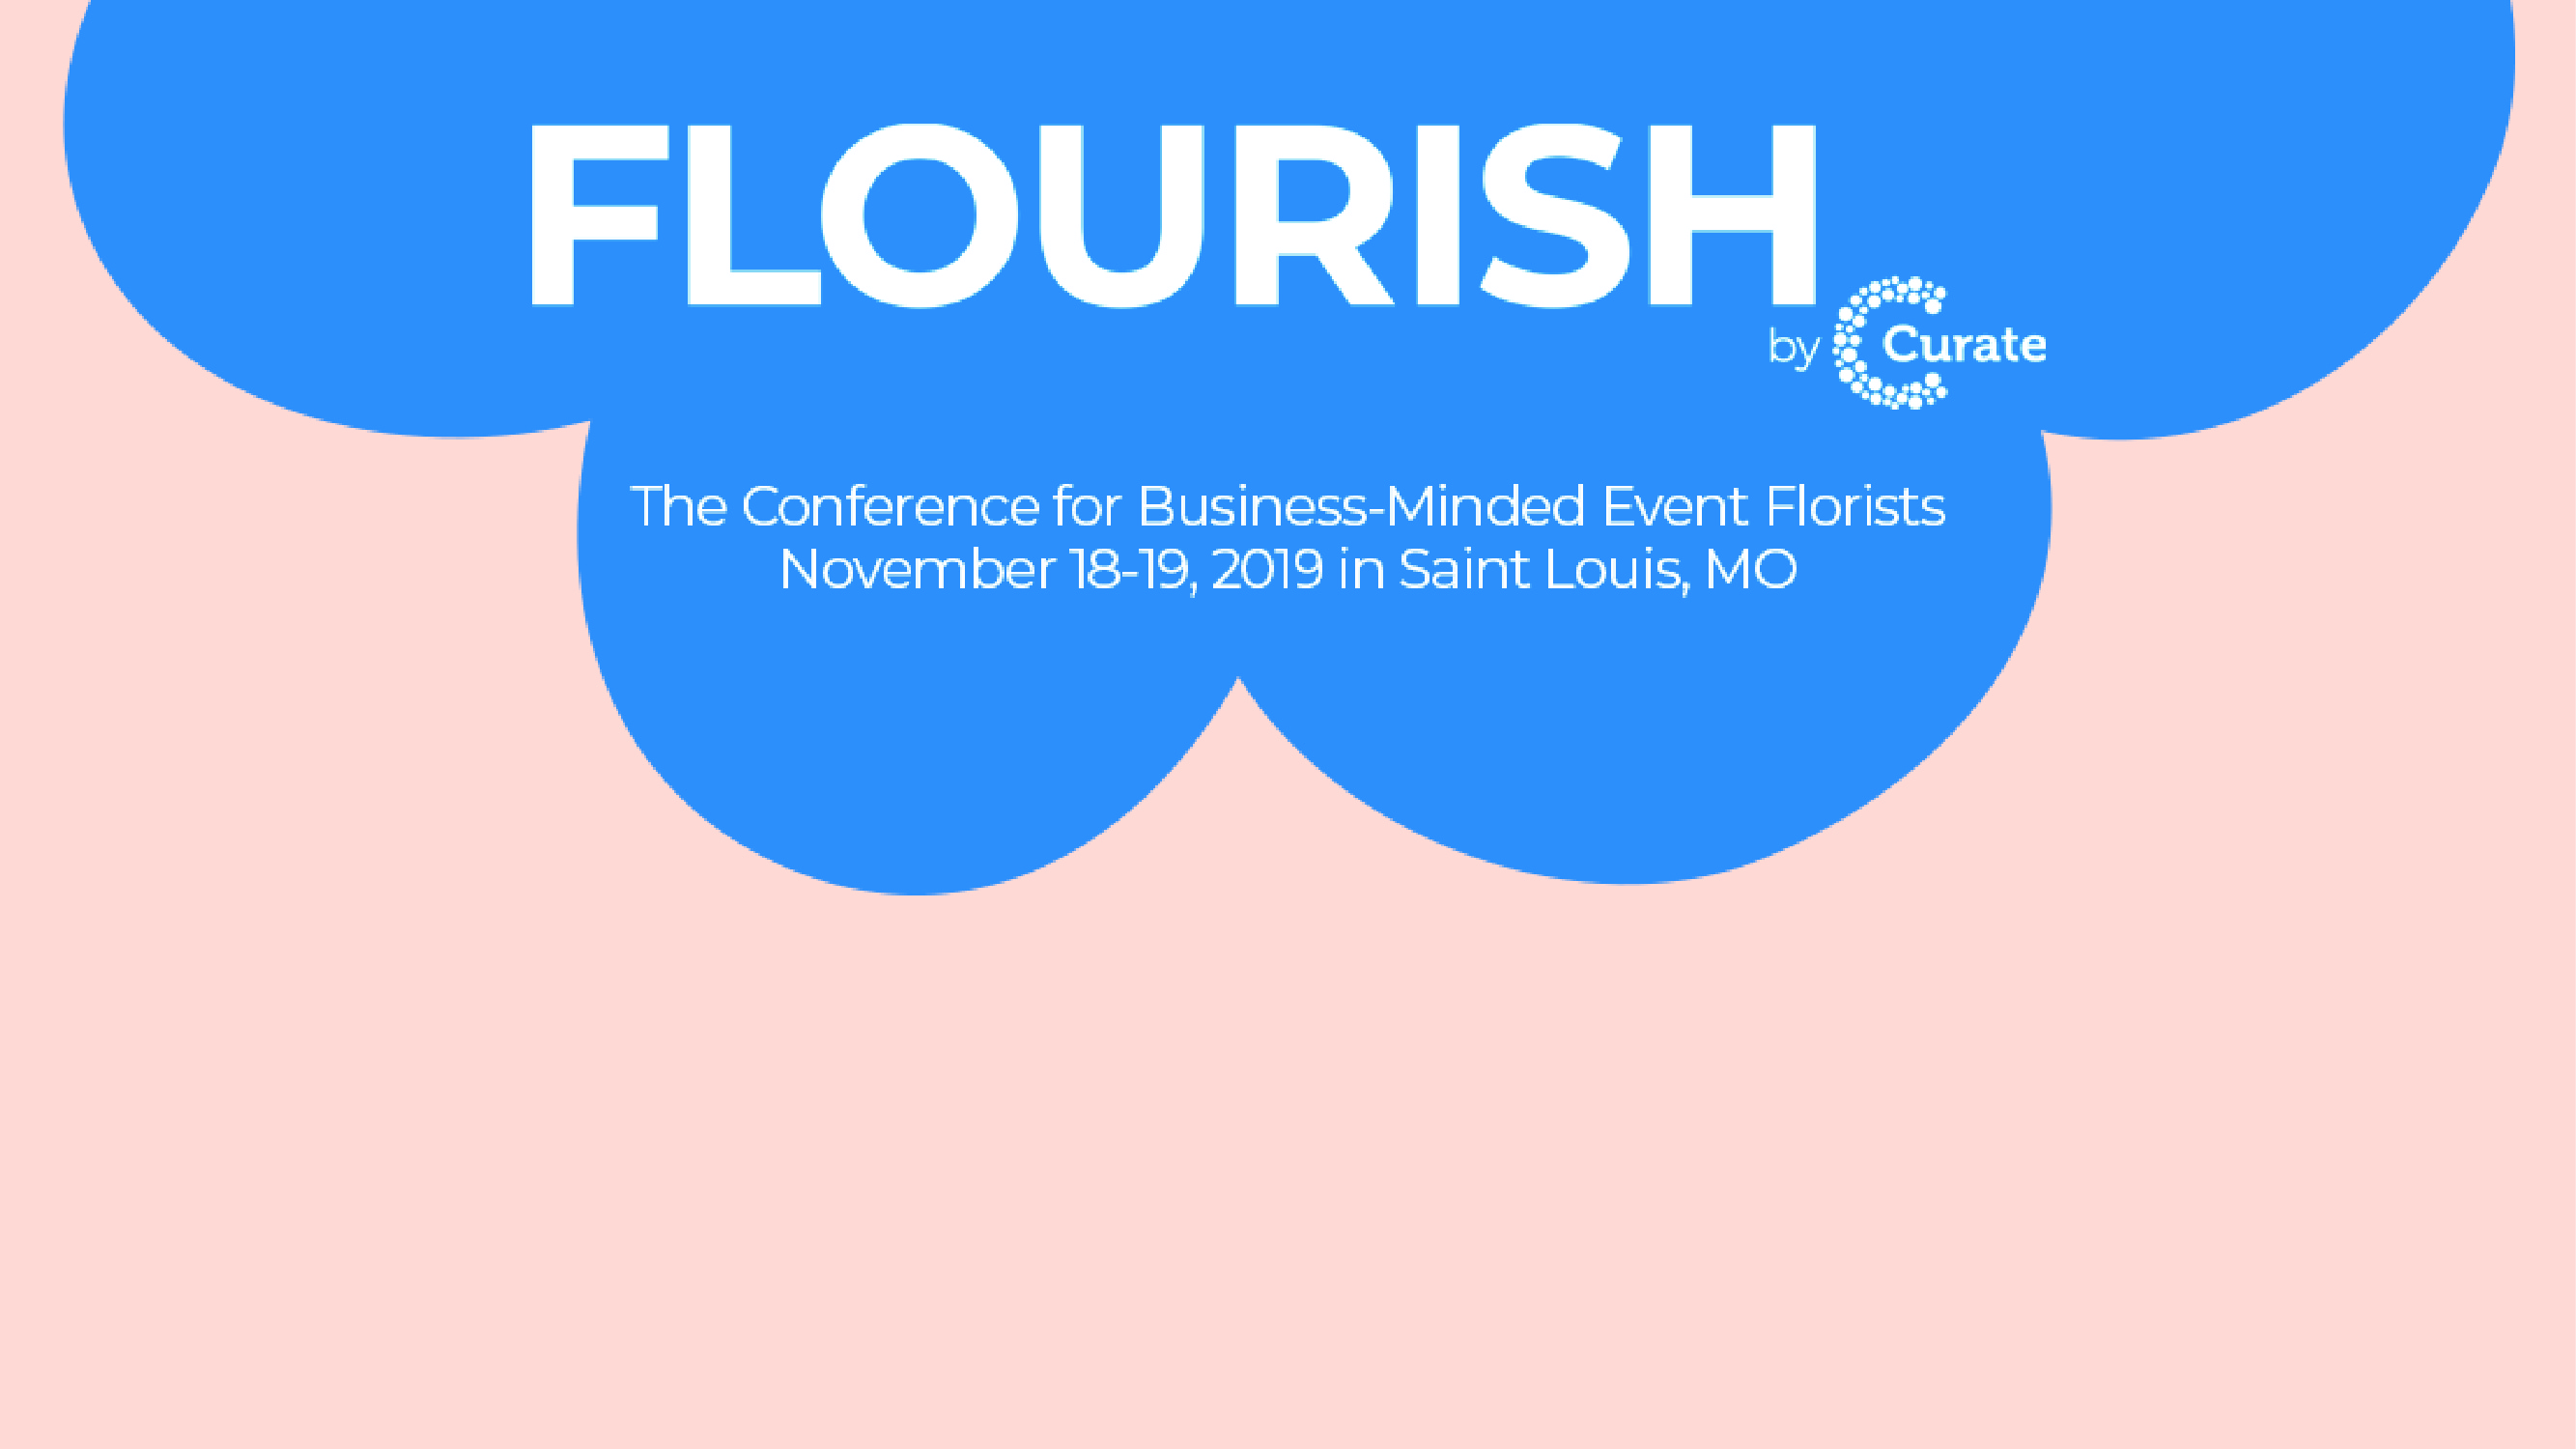 Flourish by Curate event poster.